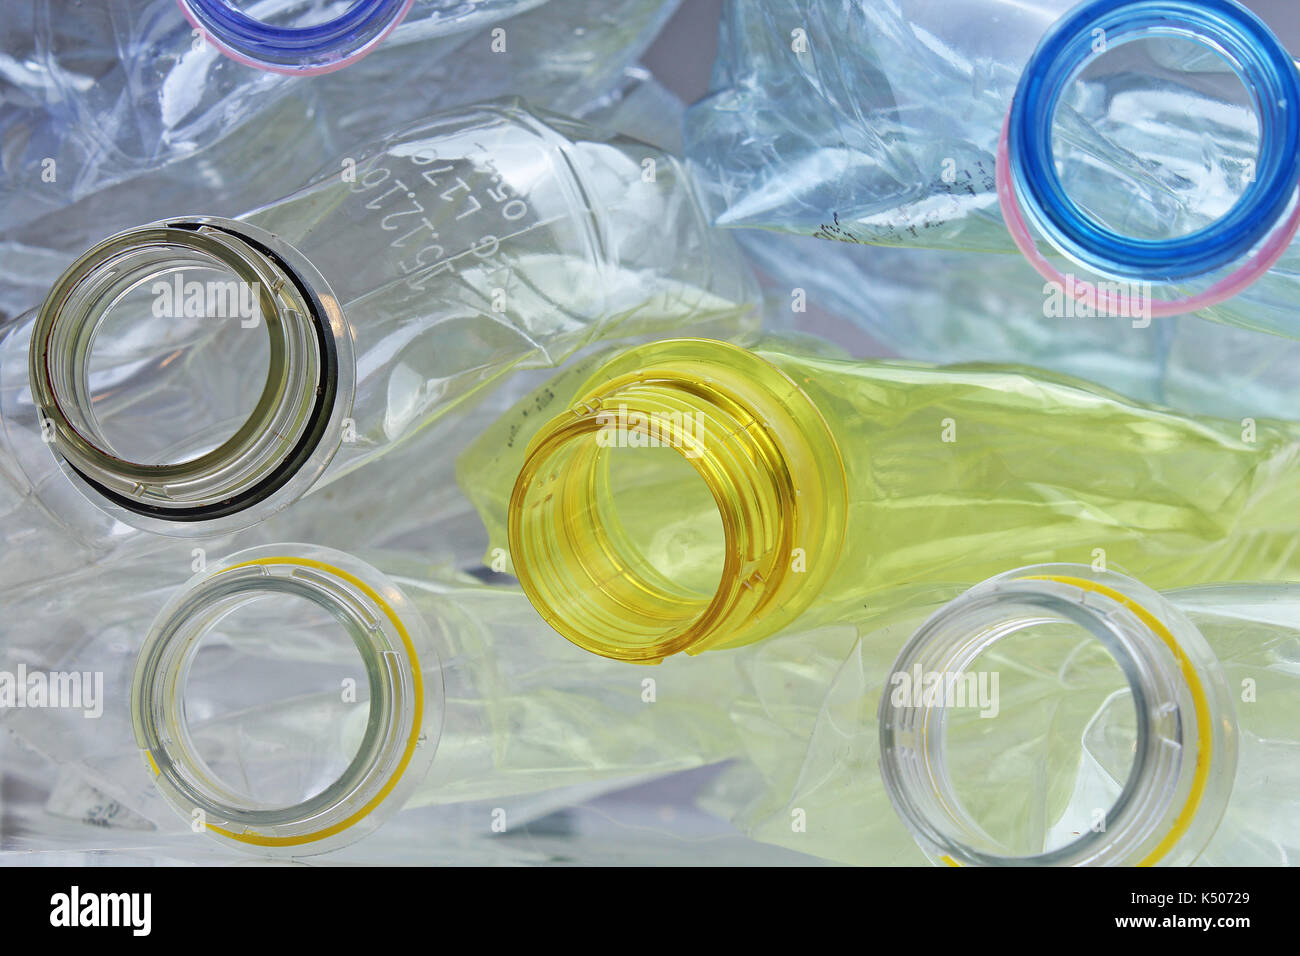 Water bottle PET plastic bottle synthetic material pollution concept. - Stock Image